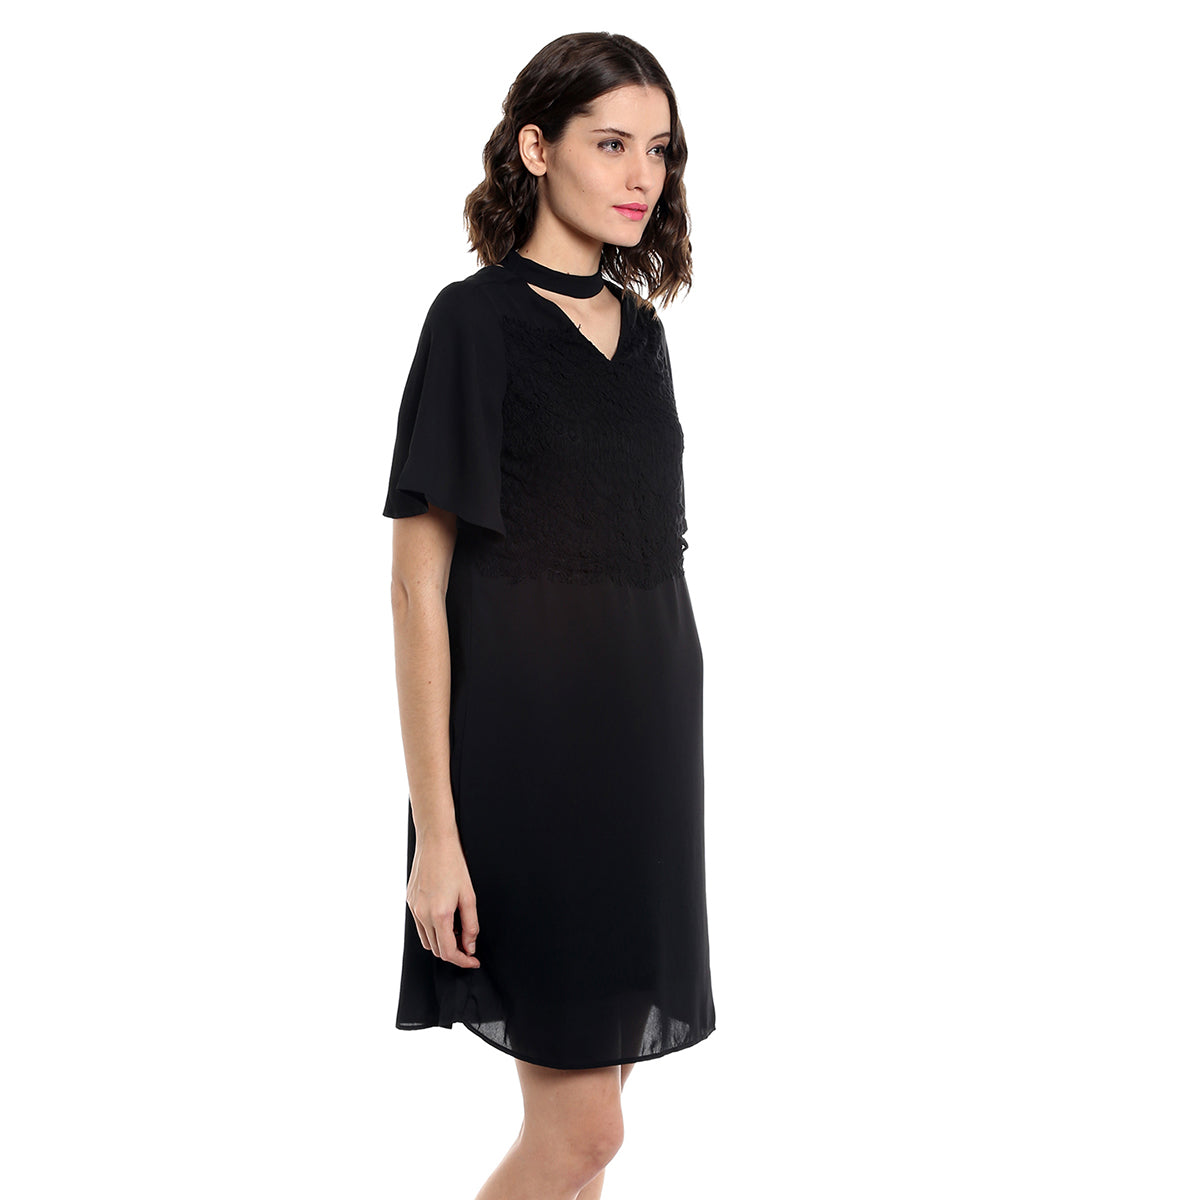 b9e907f515 Black Choker Neck Self Pattern Yoke Dress